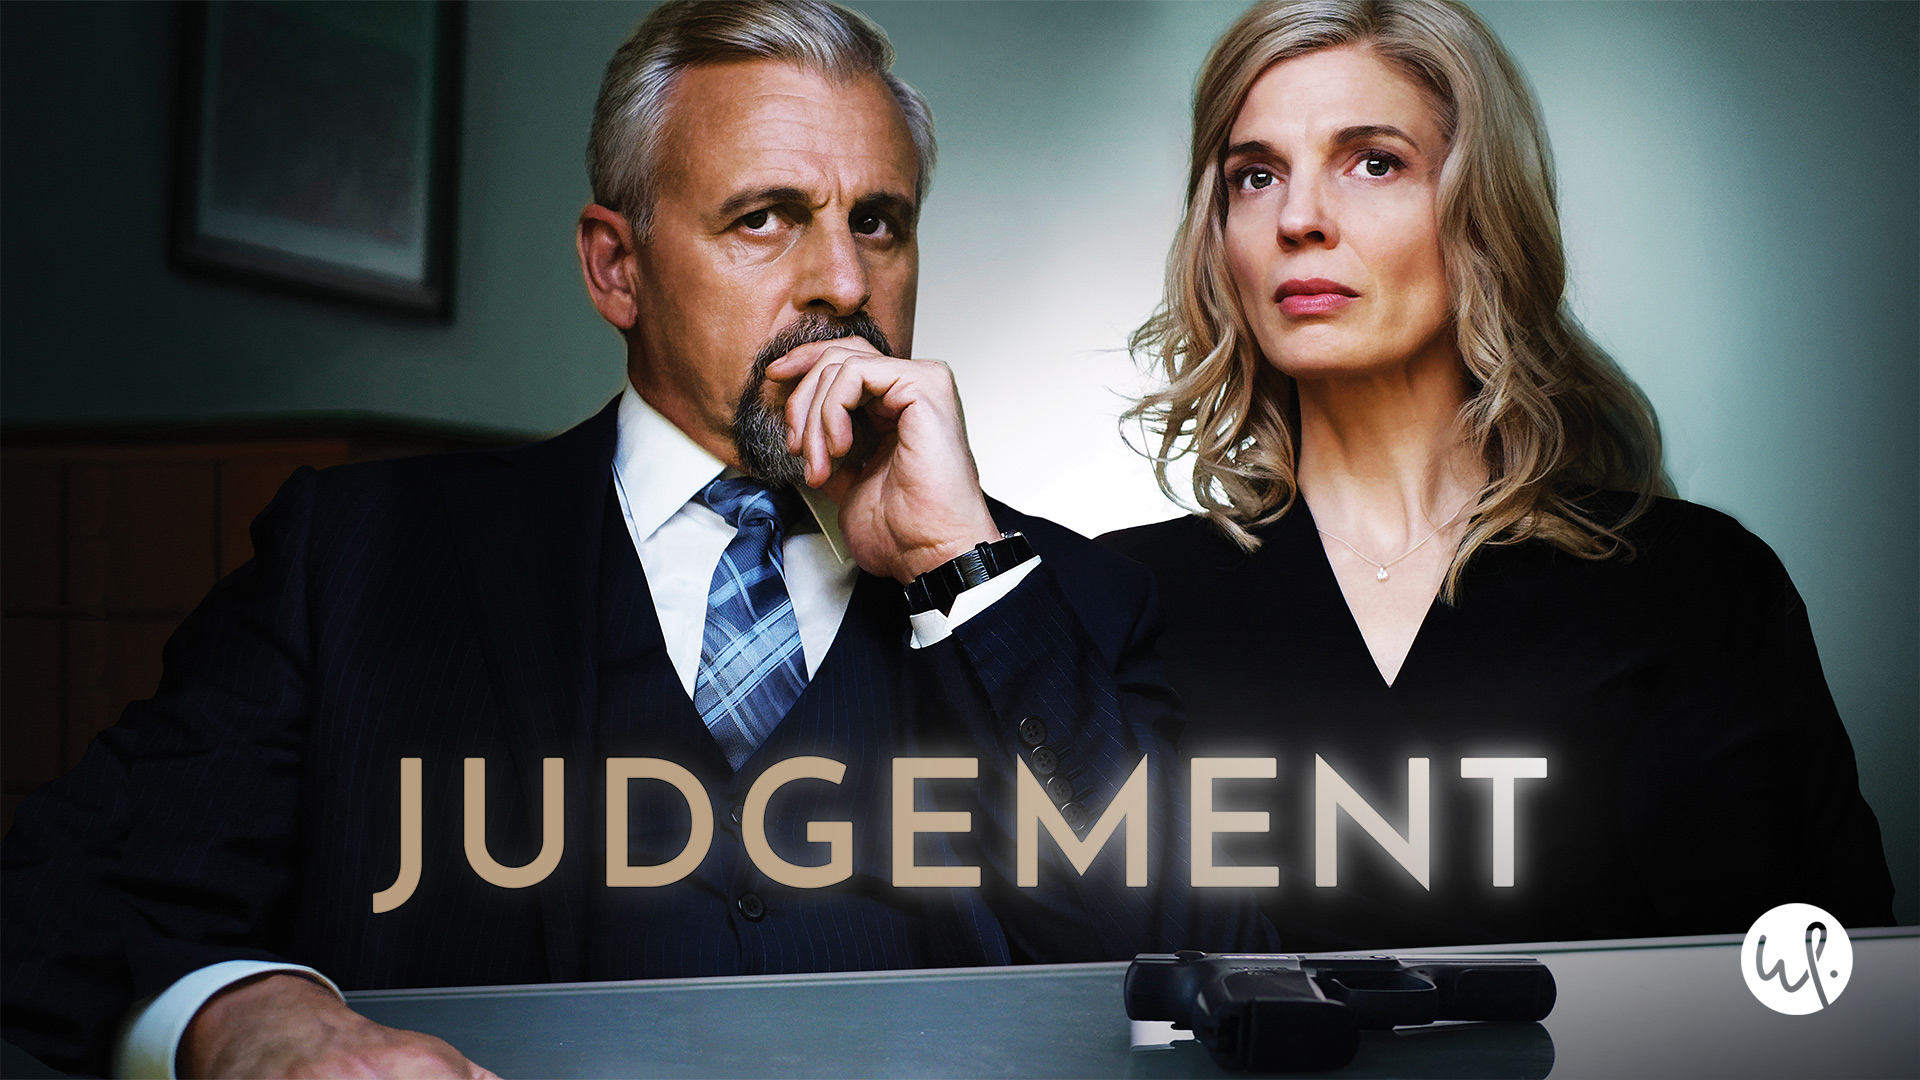 Judgement, Season 1